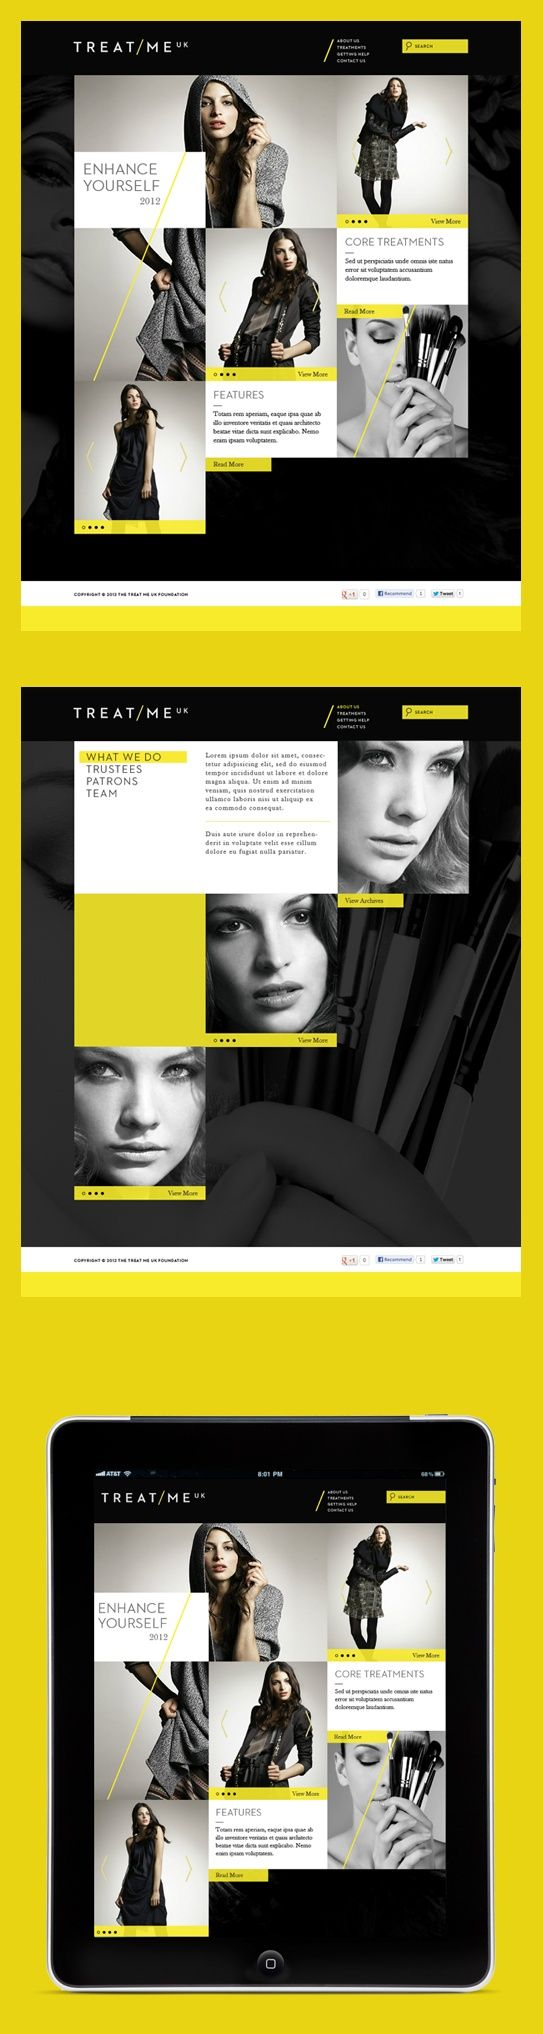 Stylish #Website